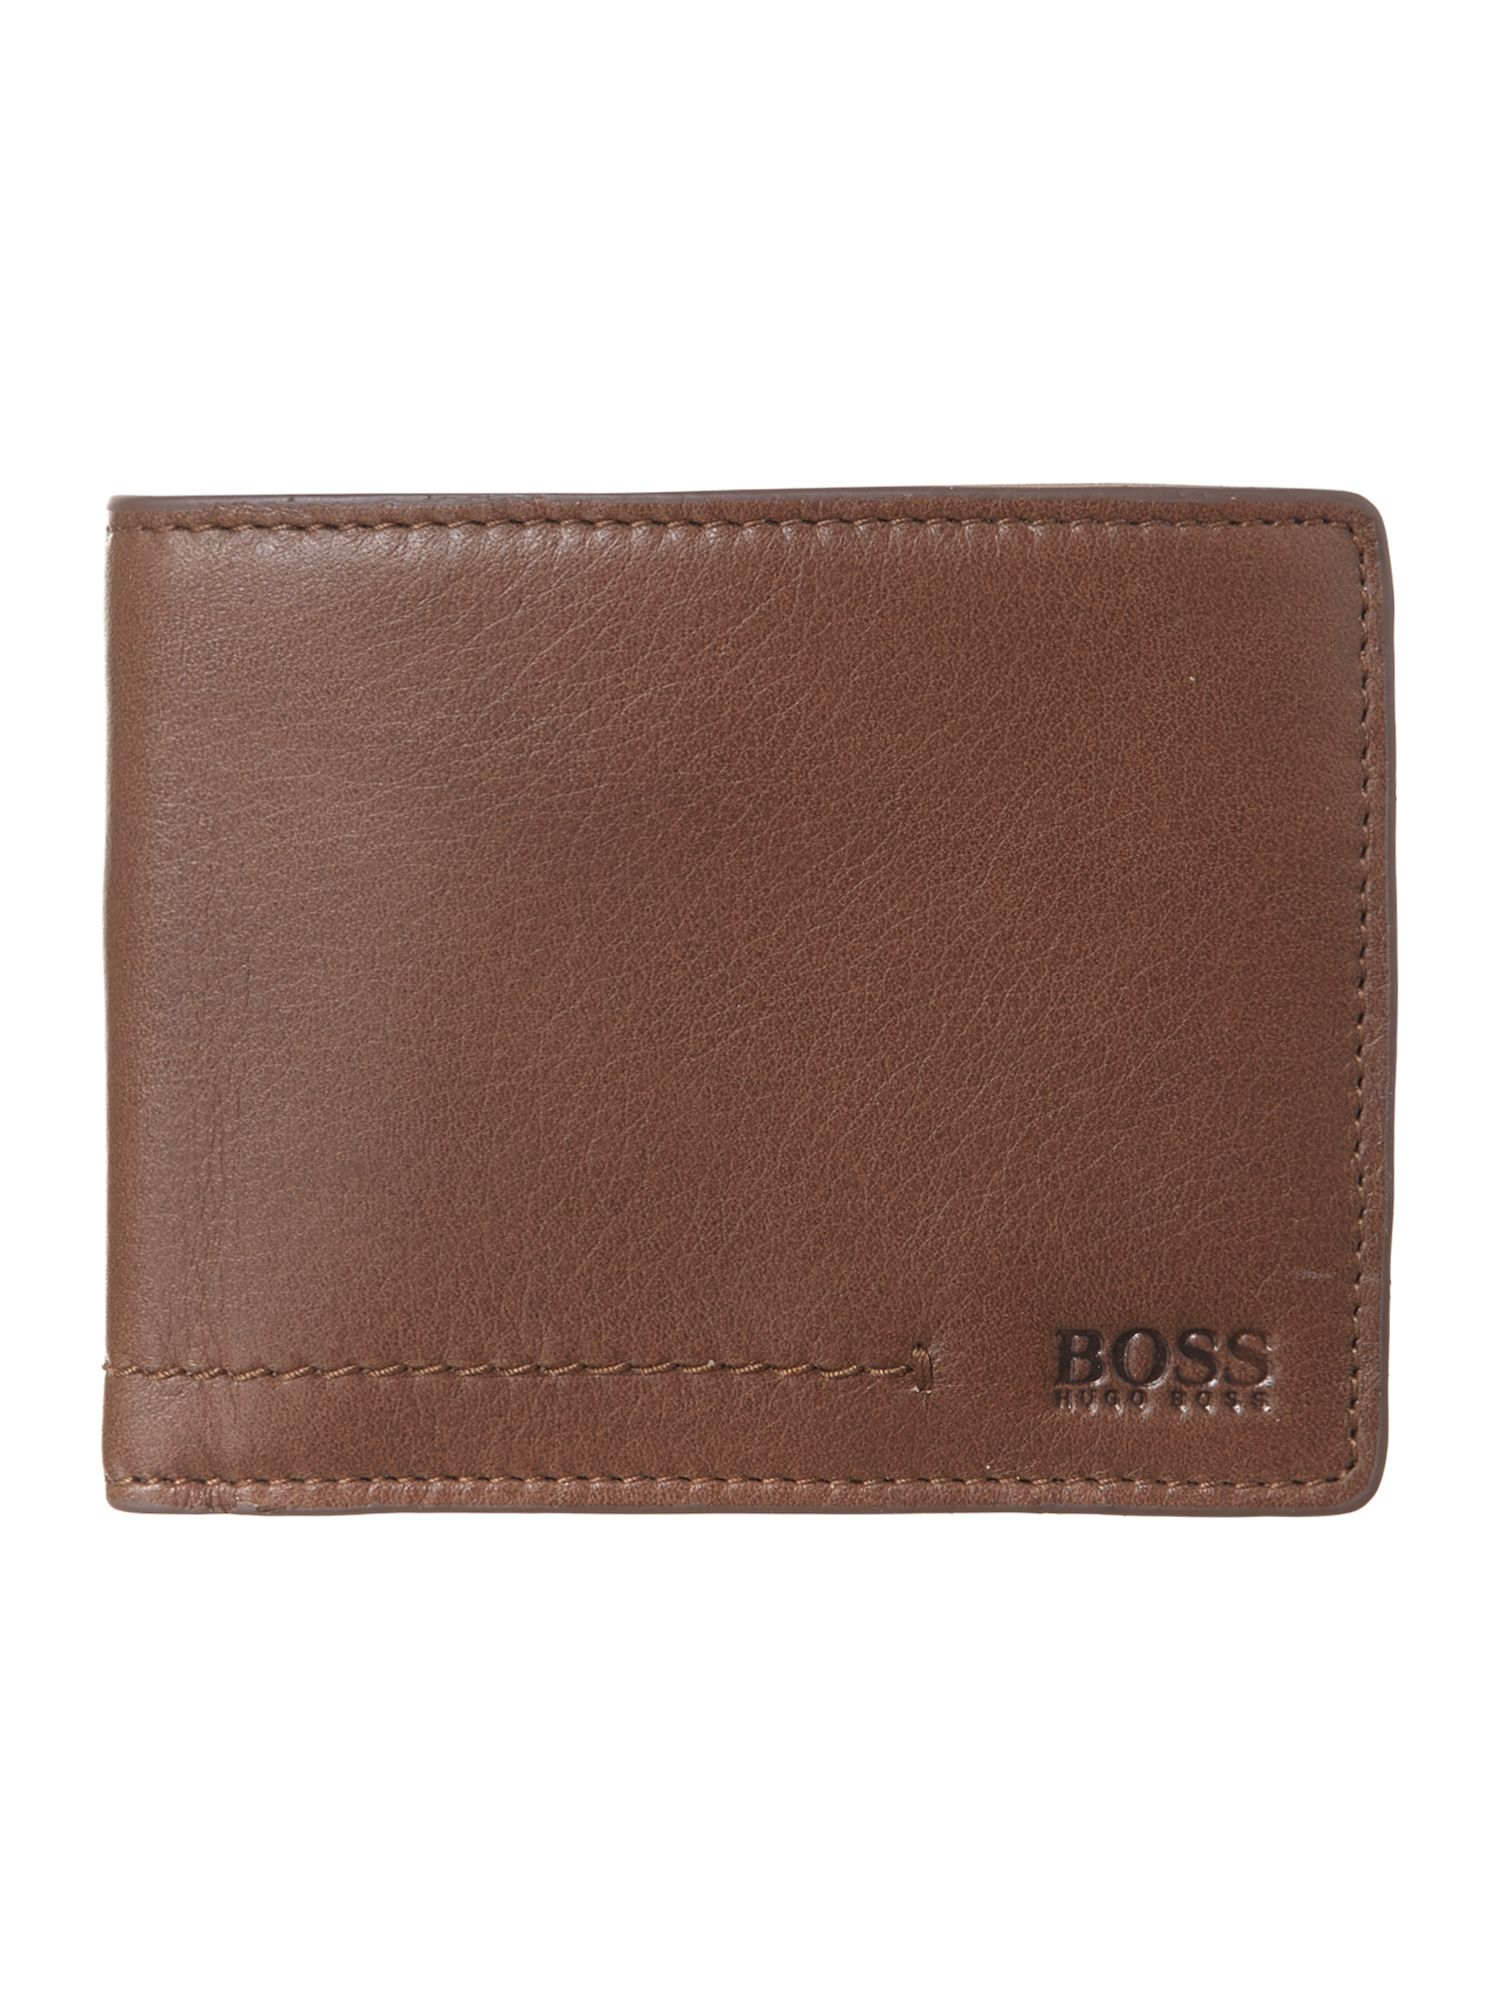 Sibod billfold wallet